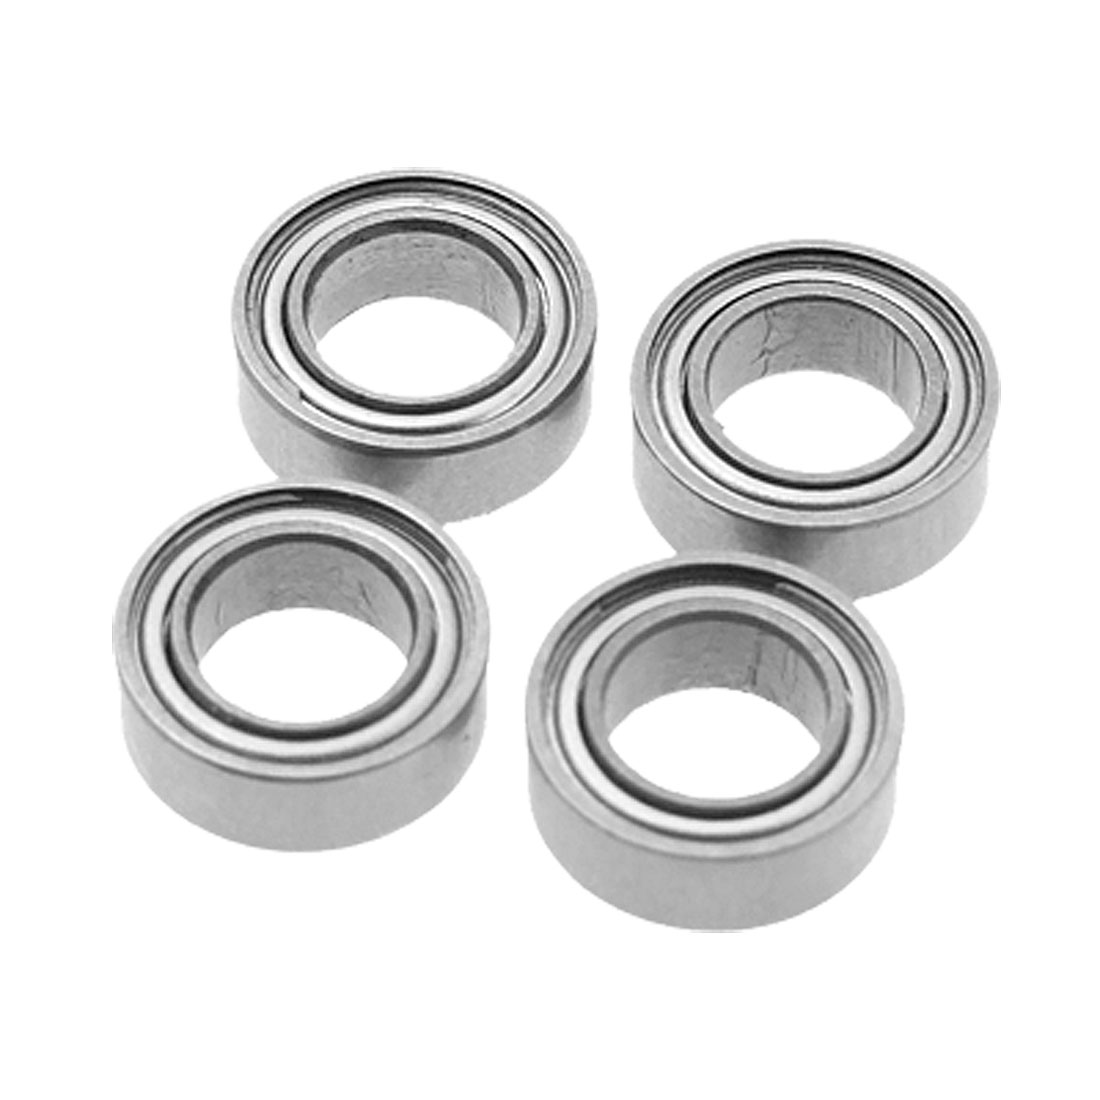 BR0407025 Bearing RC Helicopter Parts for Pigeon 450M1 and T-Rex 450 (Inner Diameter 4mm)